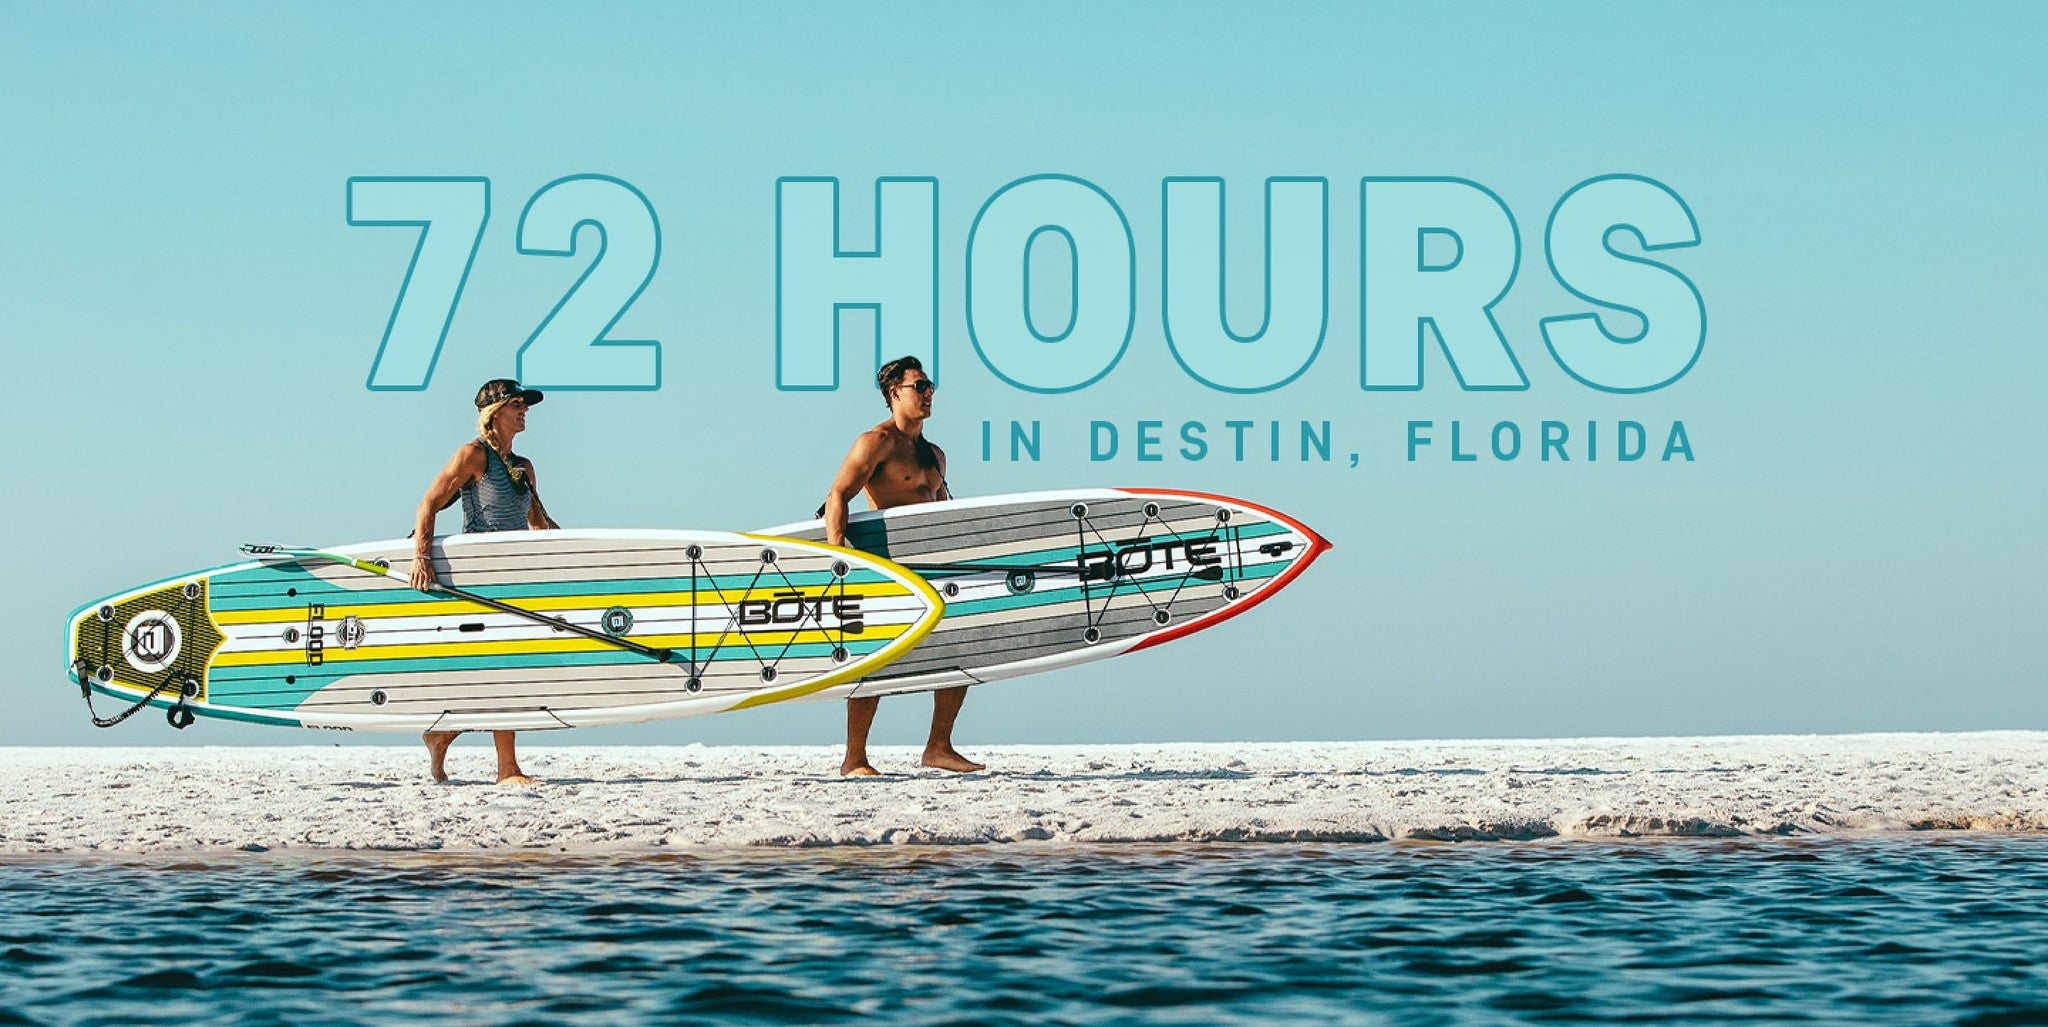 72 Hours in Destin, Florida